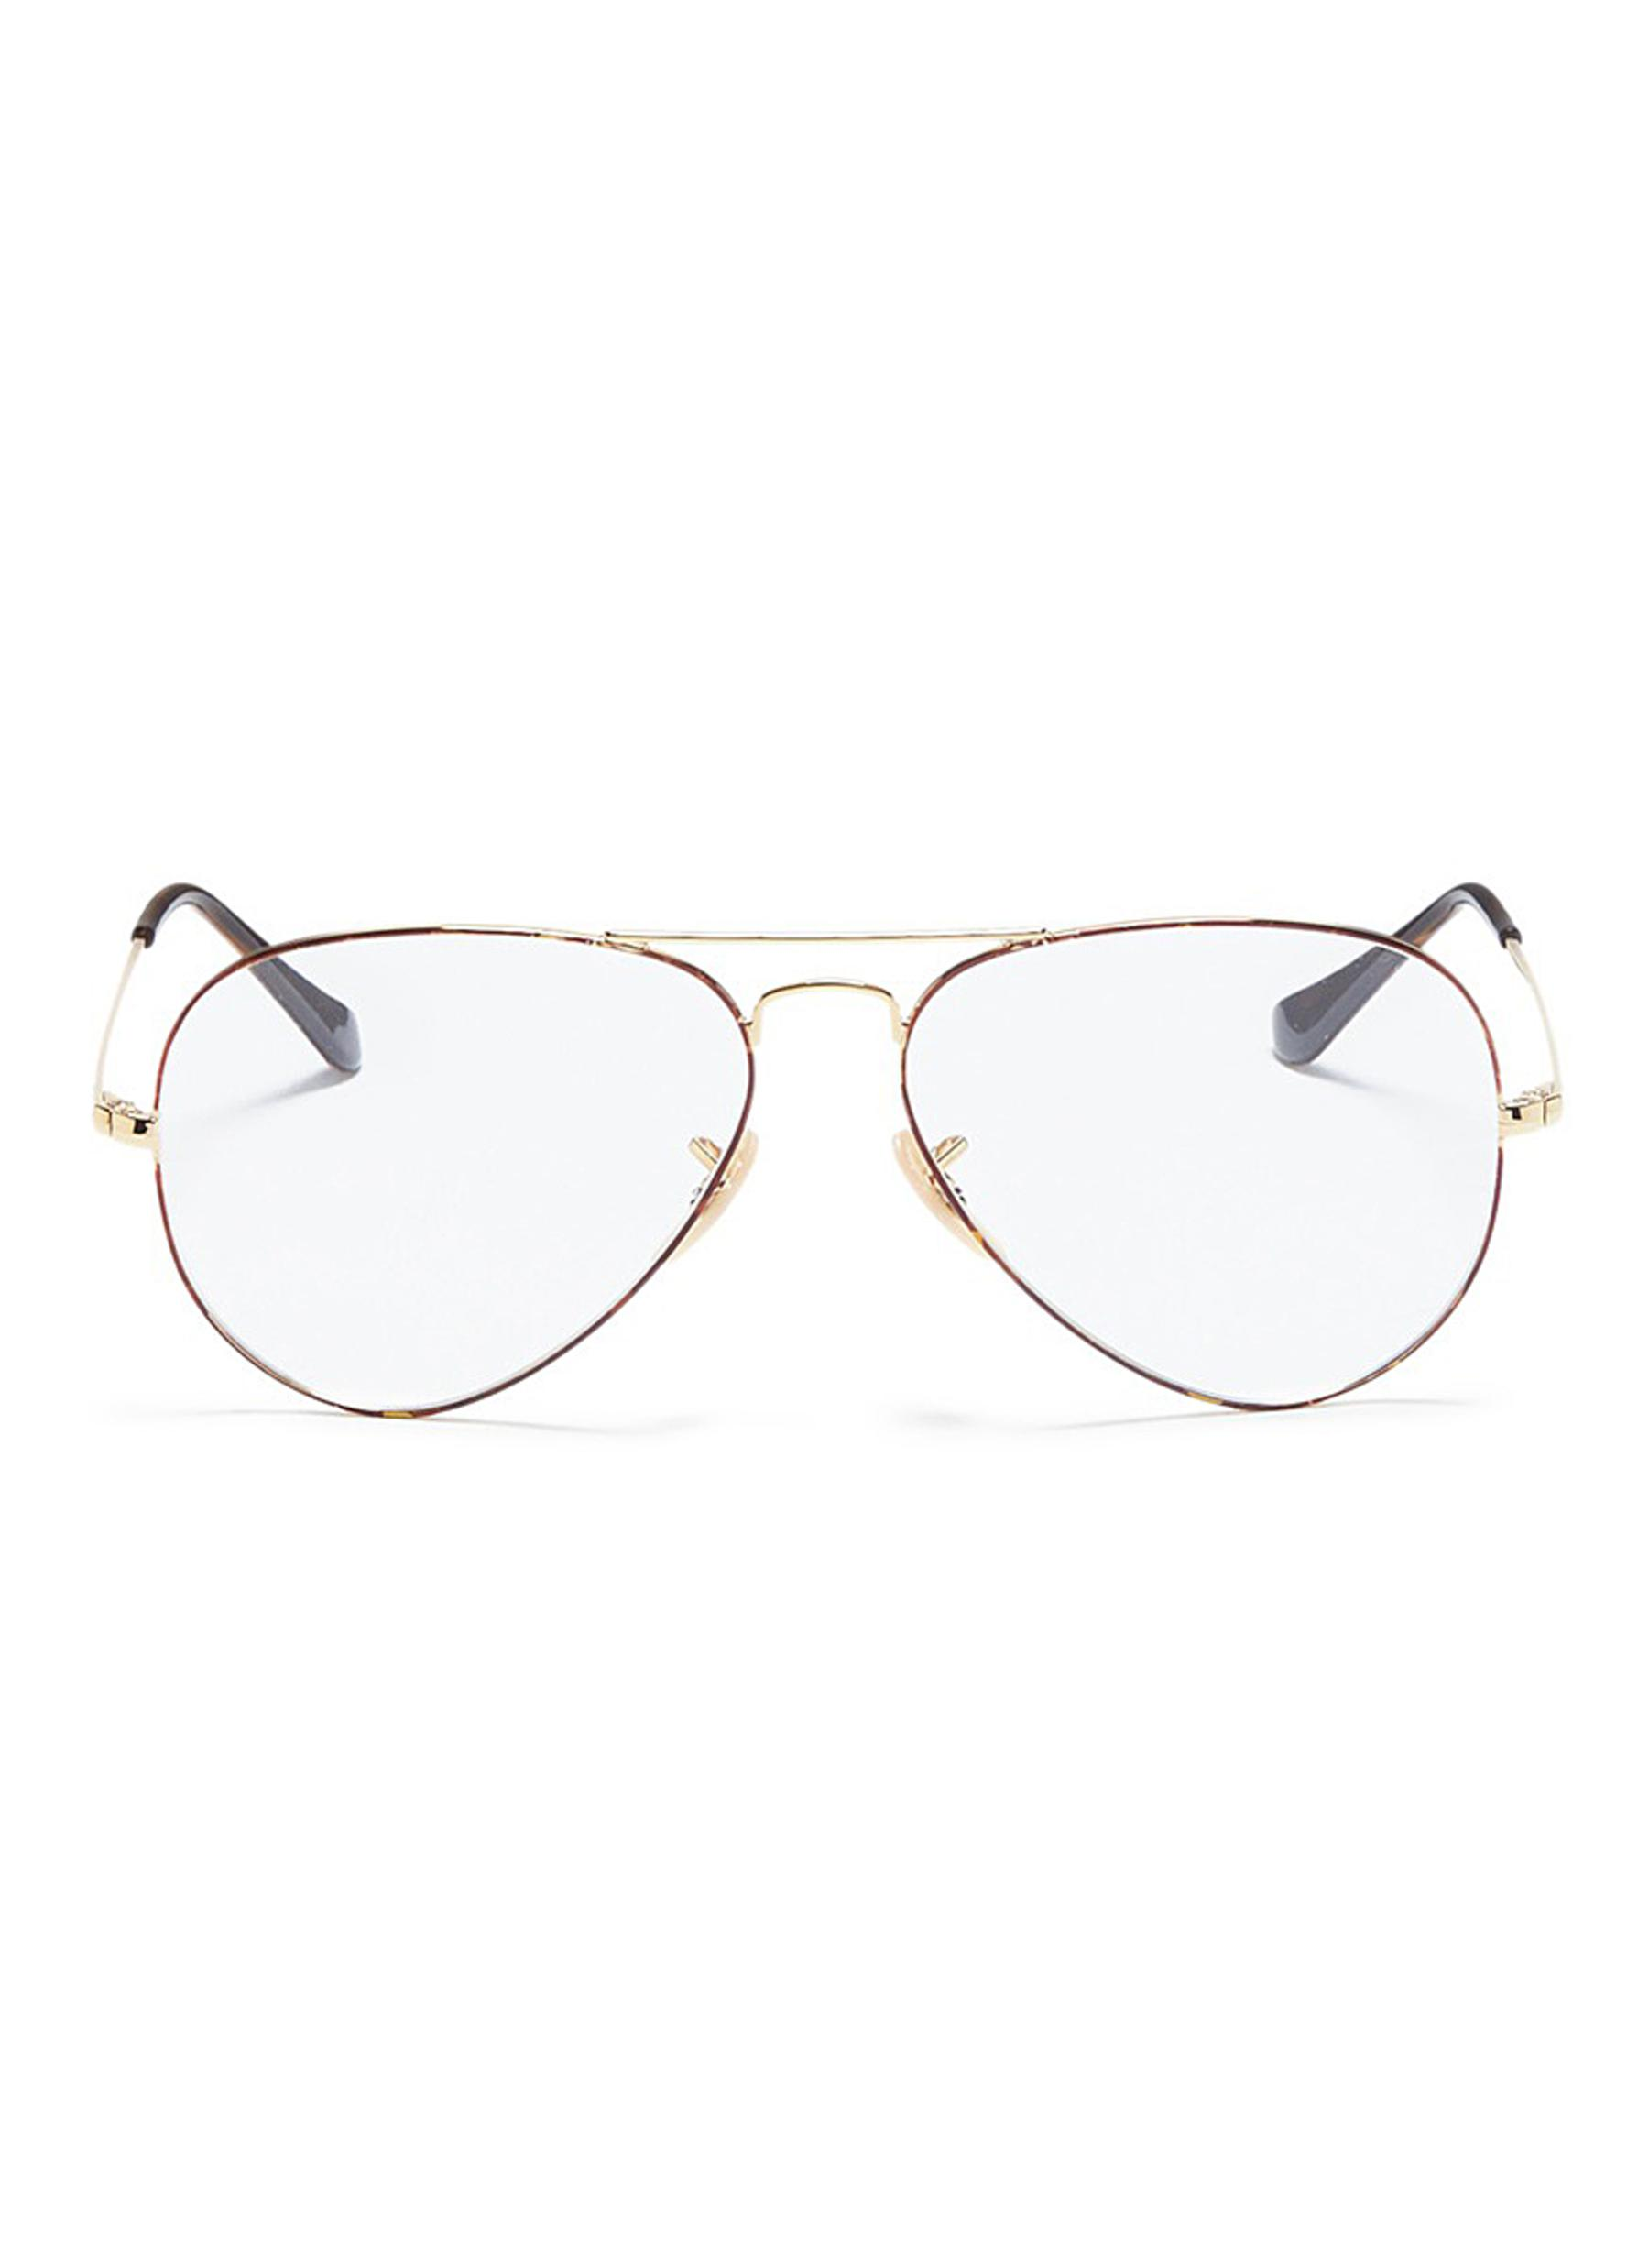 8aac24c025 ray ban general 50 gold